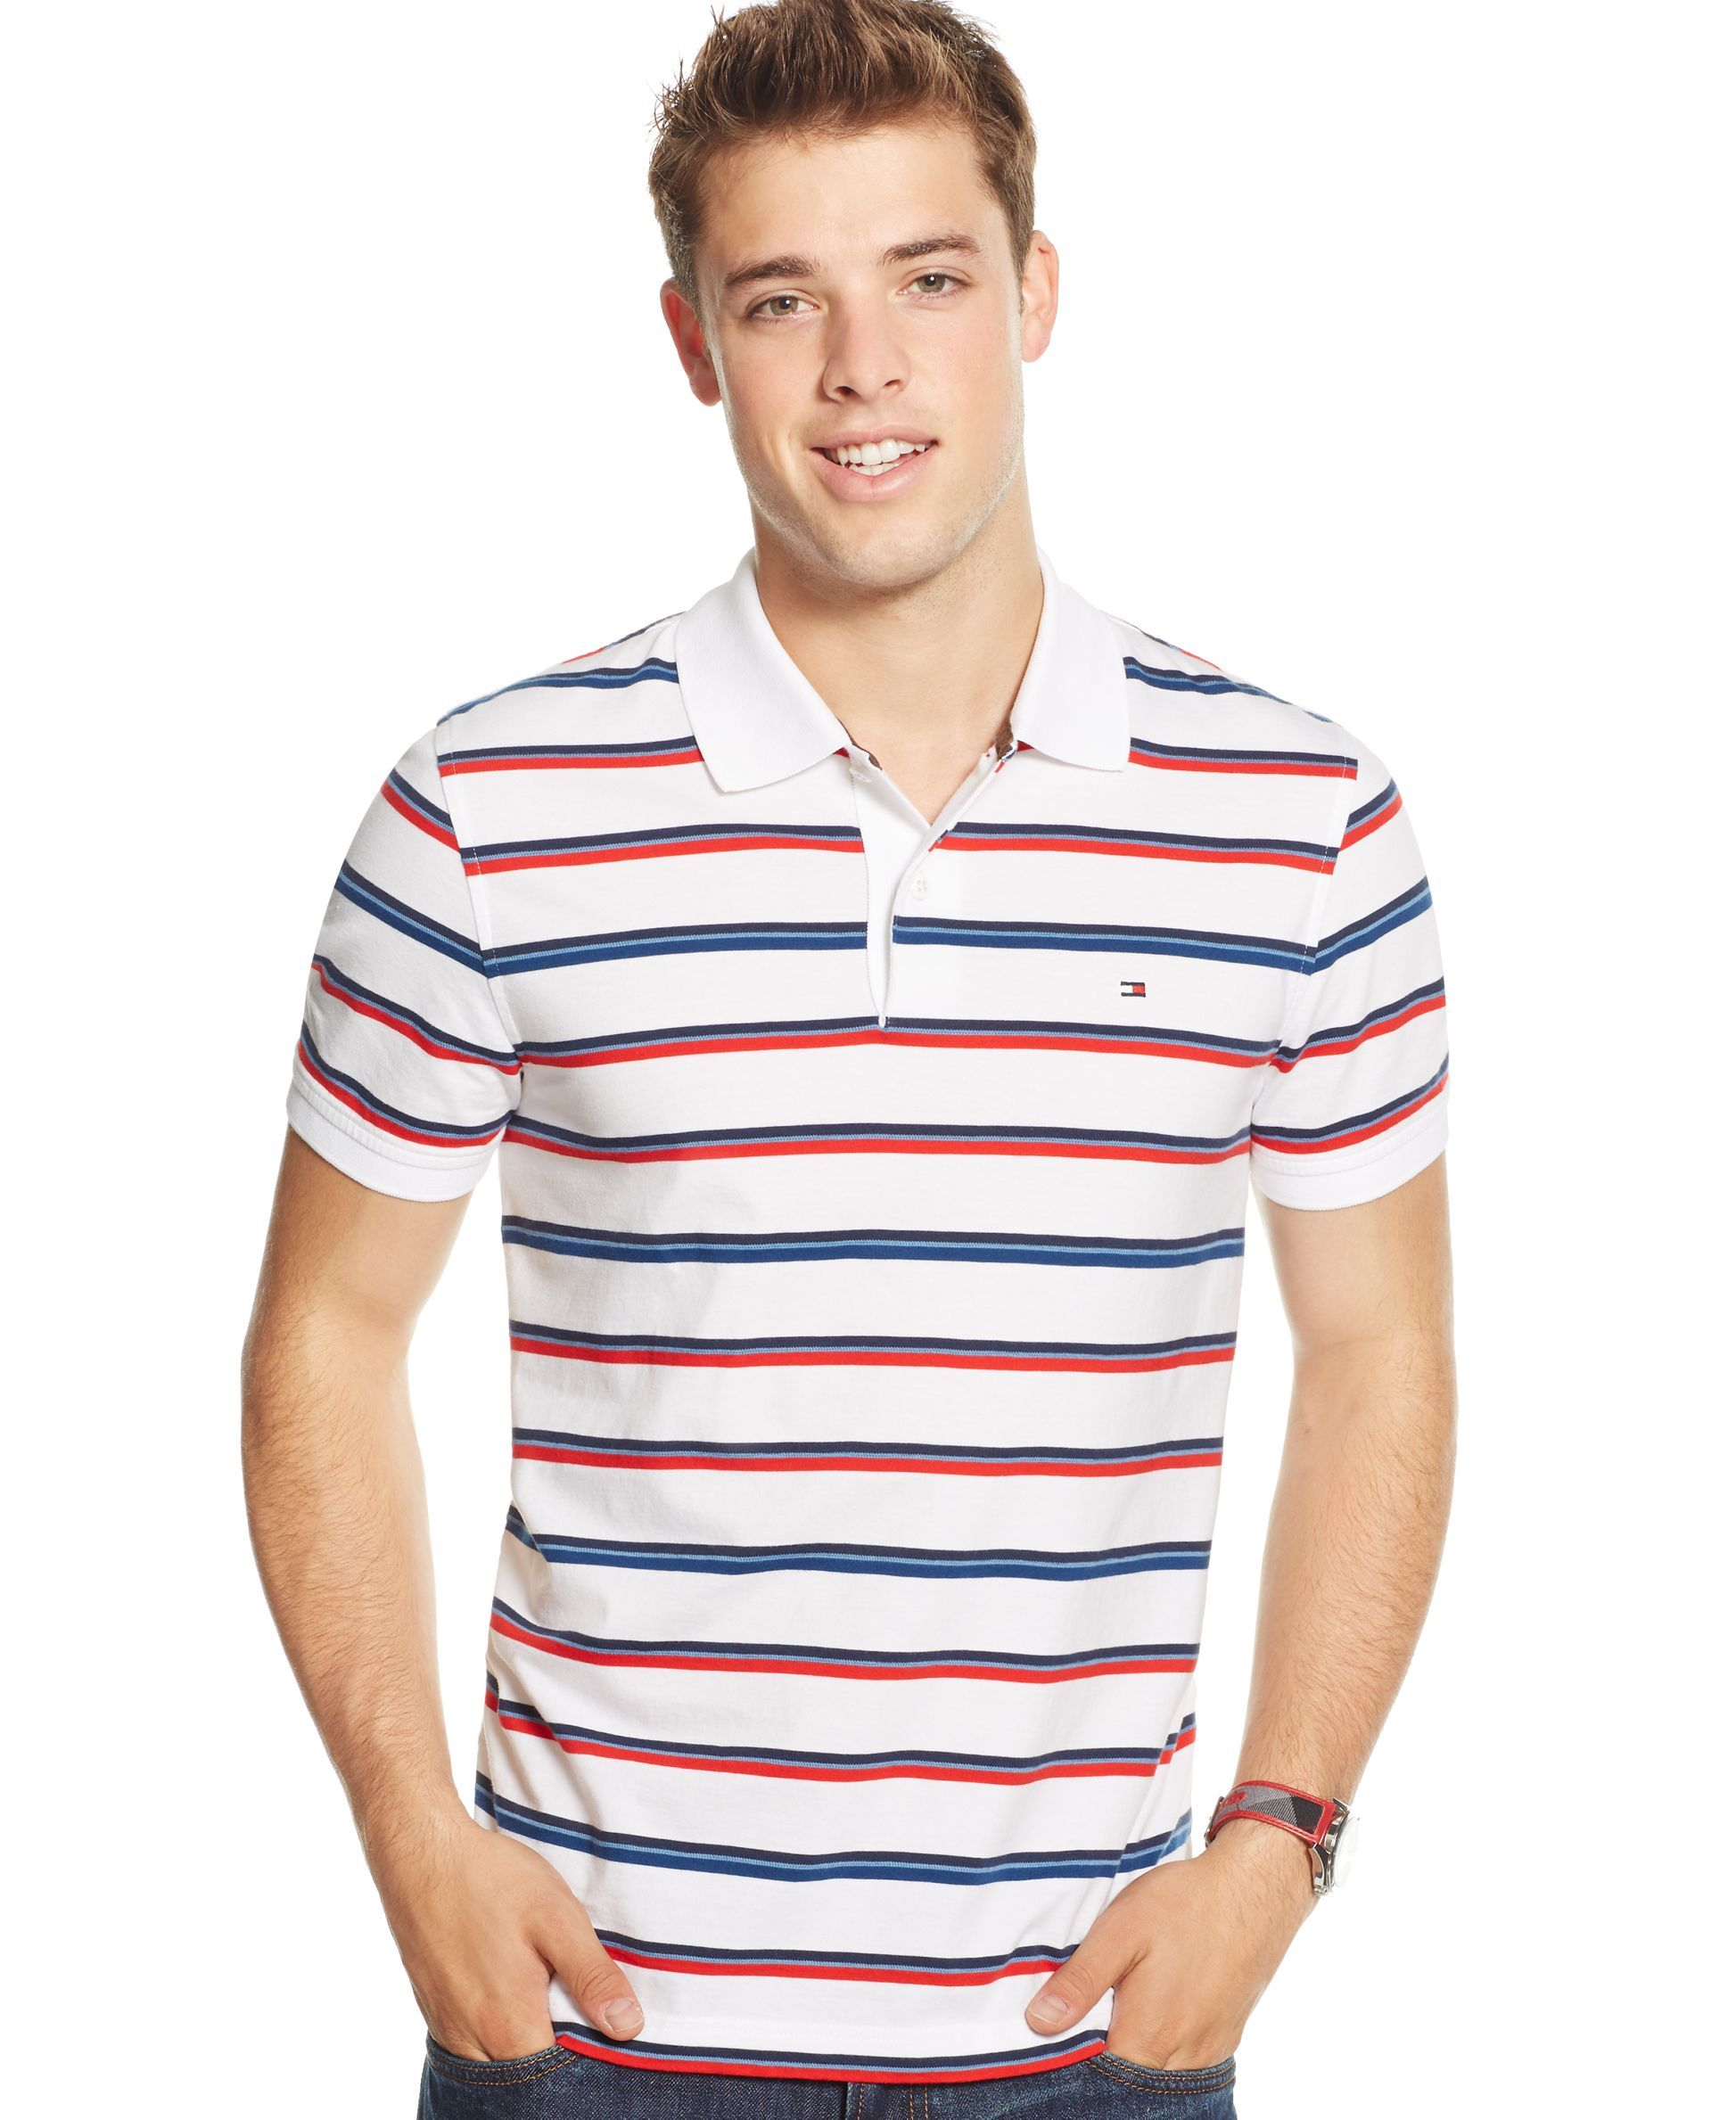 a511c8f6 Tommy Hilfiger Striped Polo Shirt | stripers in 2019 | Striped polo ...